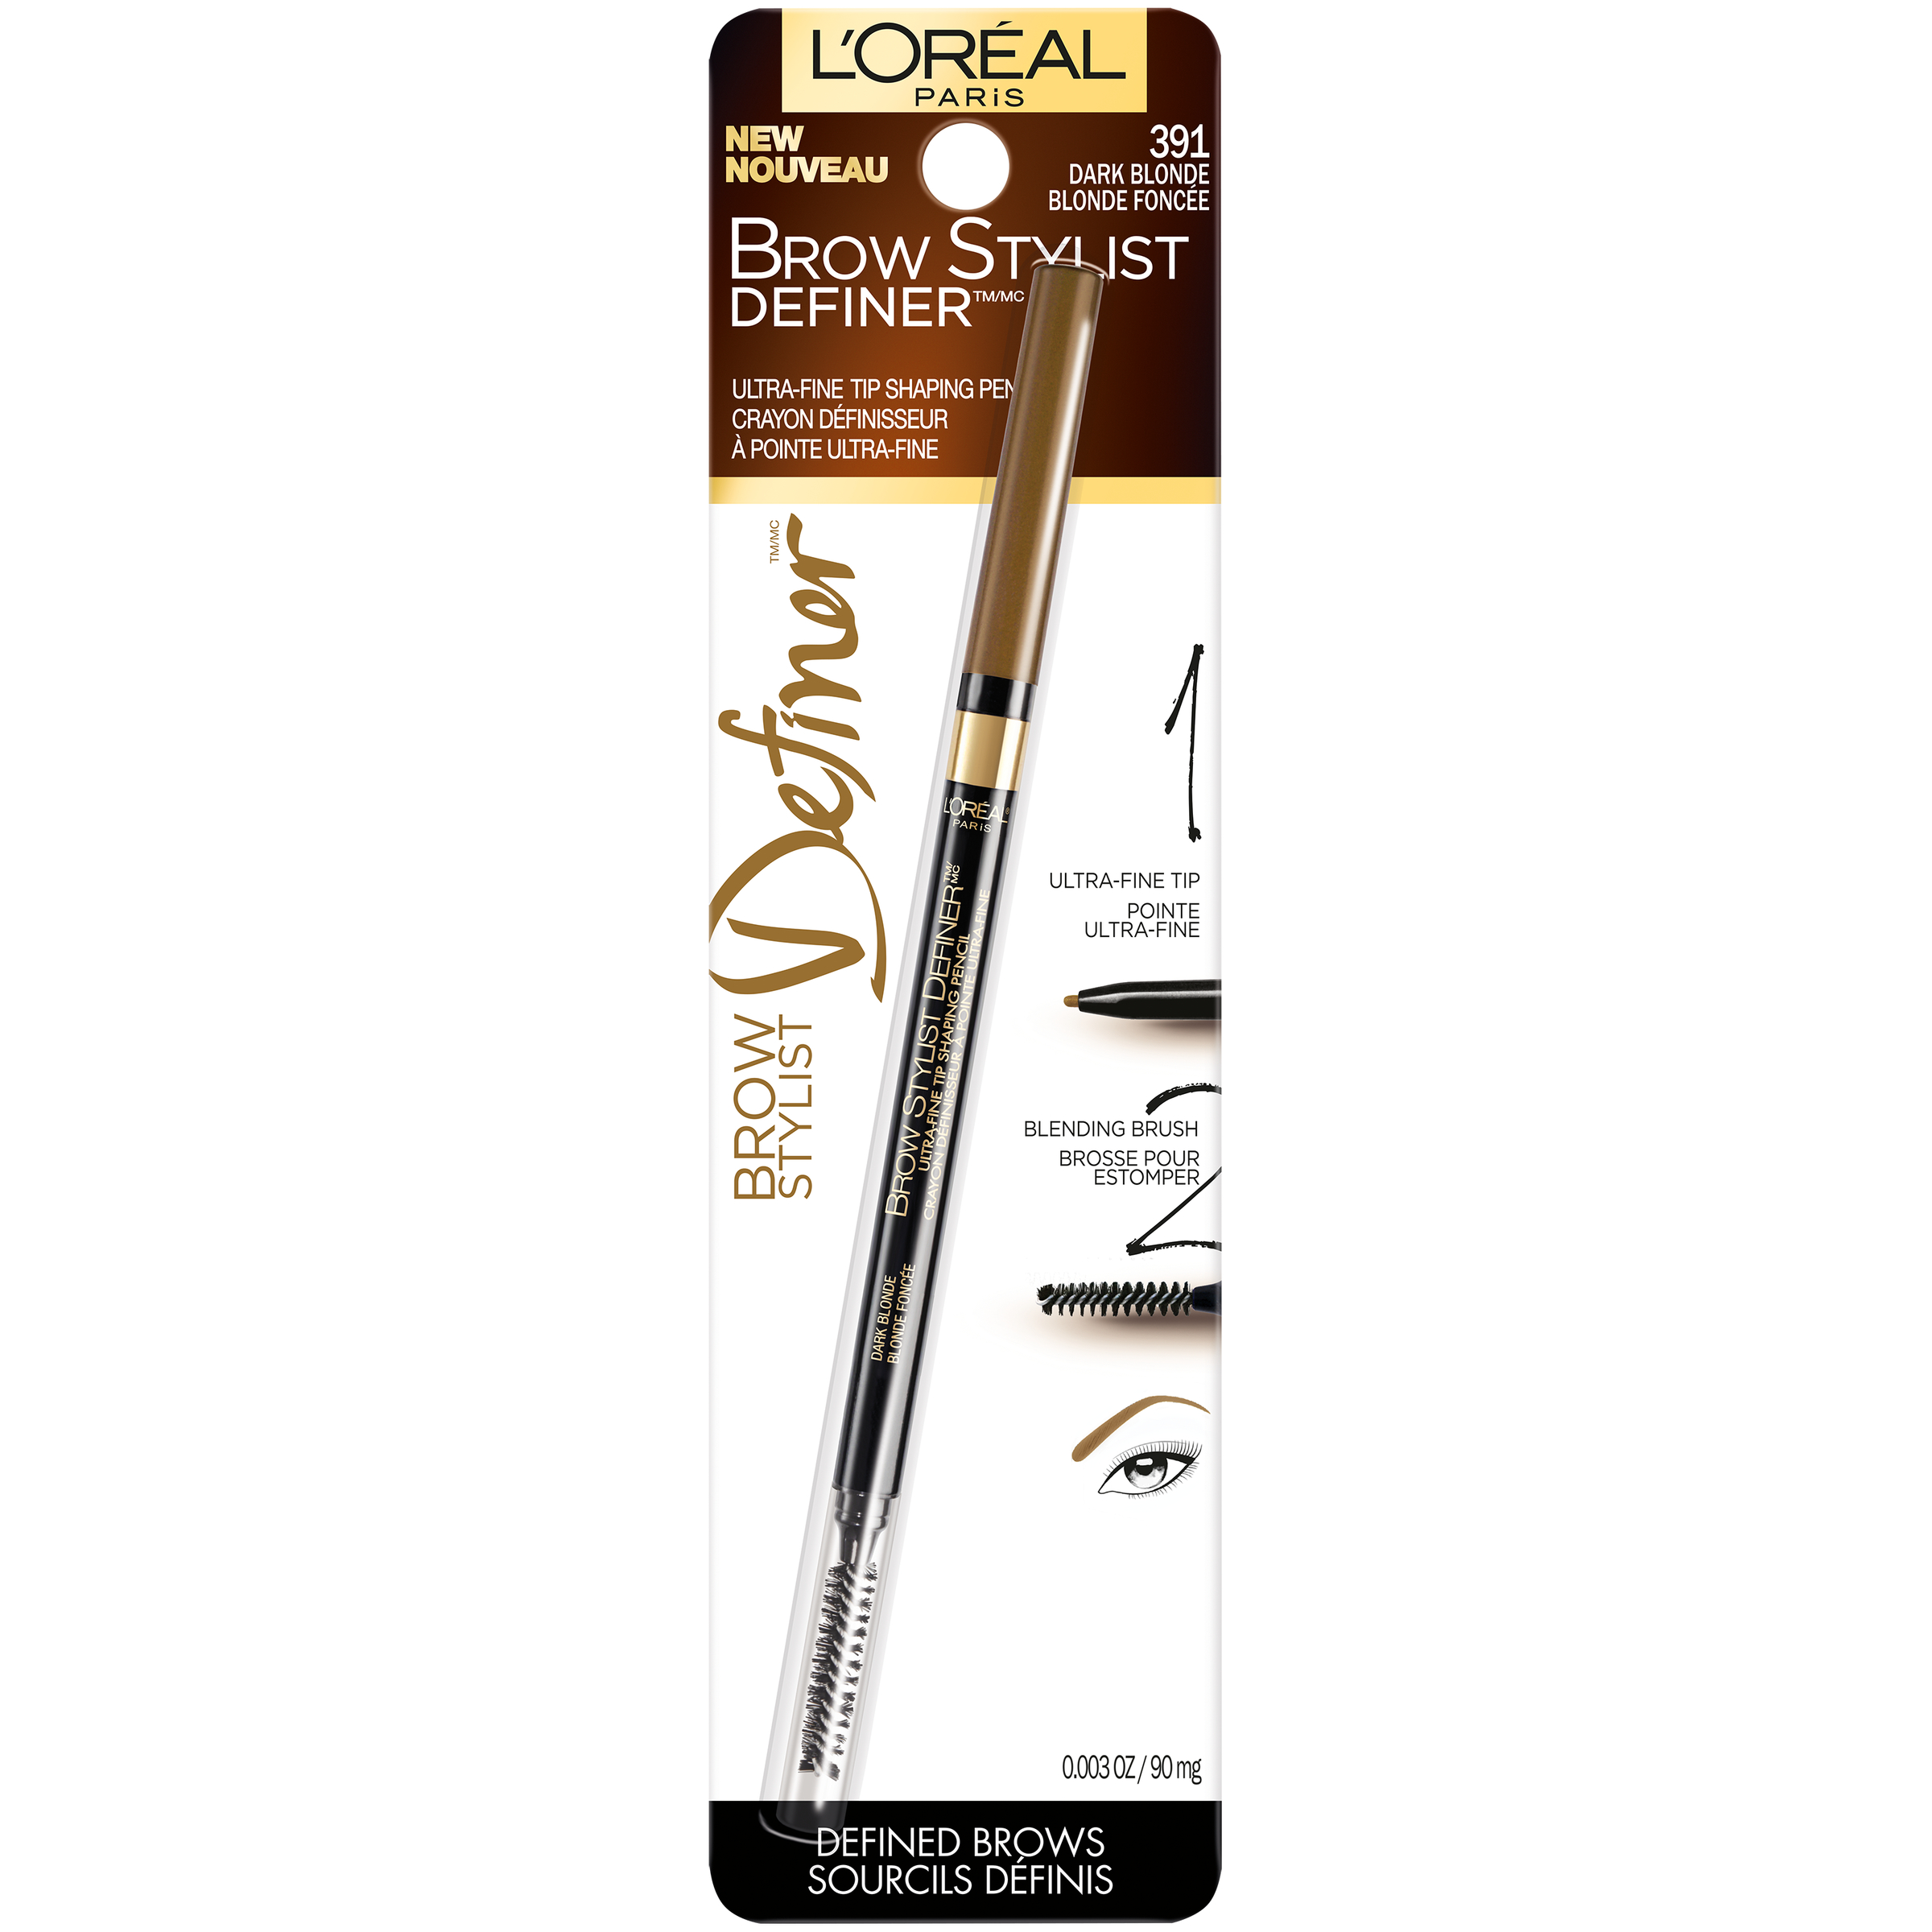 Eyebrow Liner – I NEED this for SERIOUS